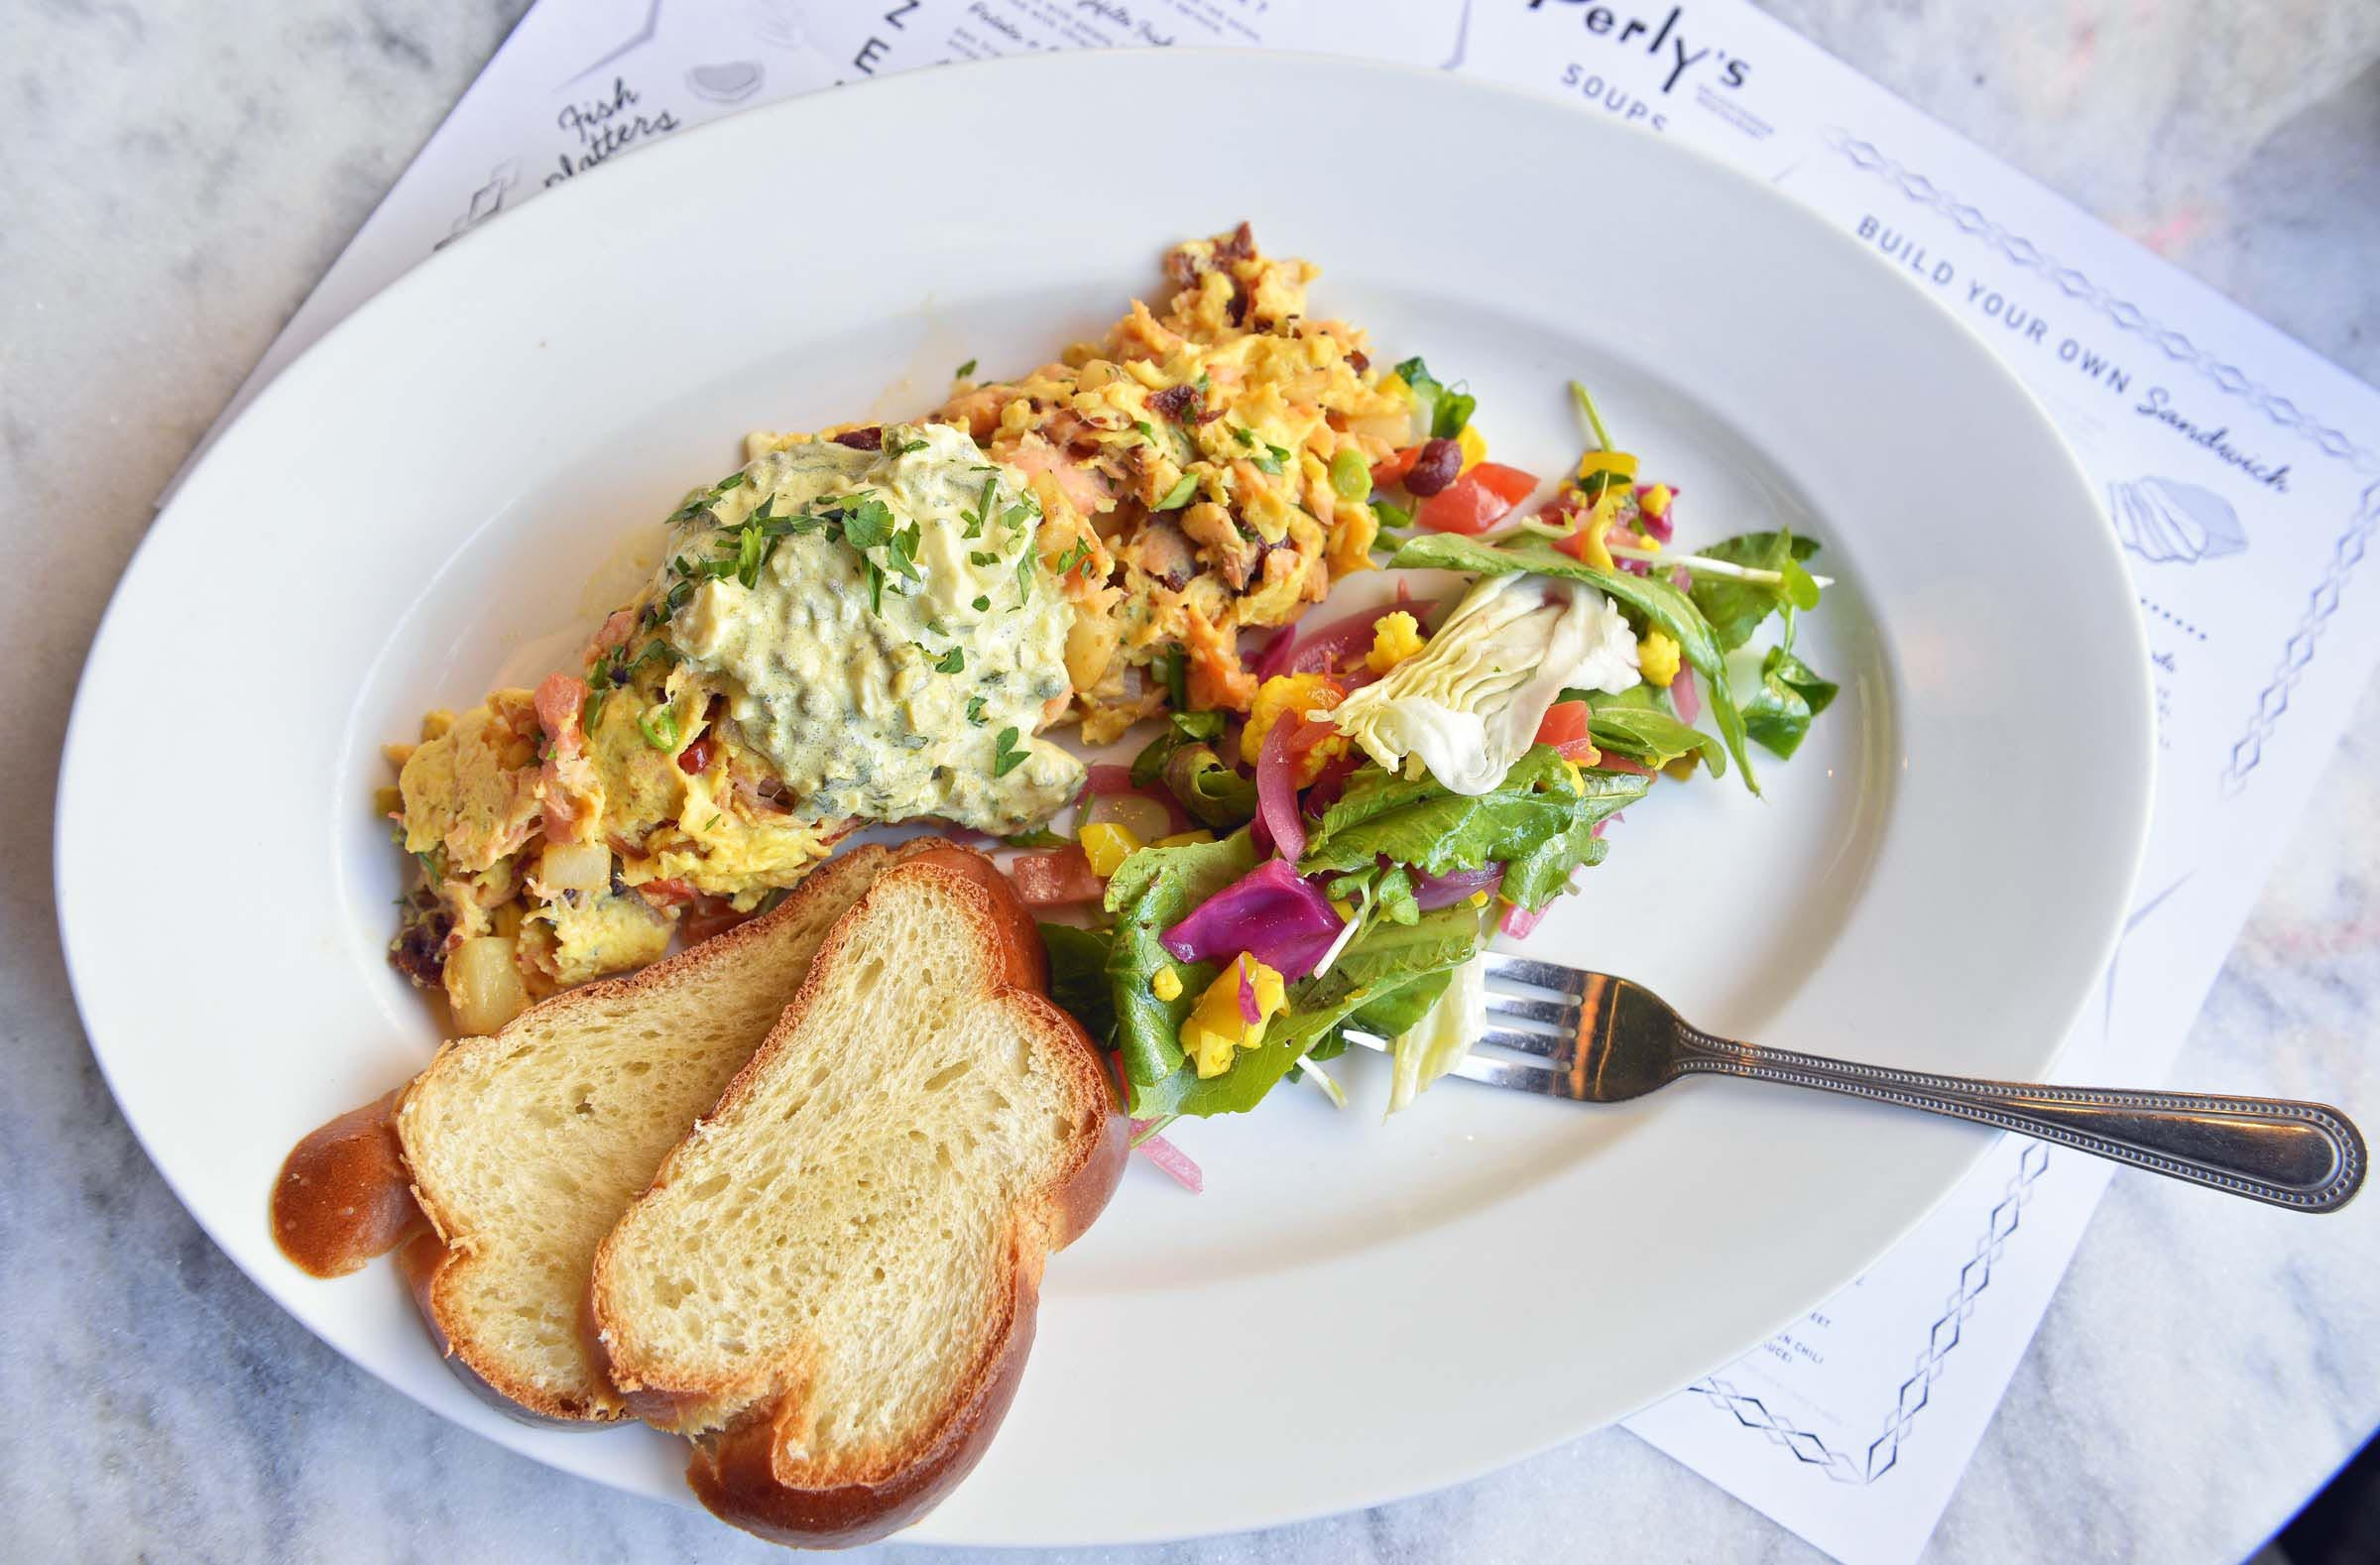 Perly's avoids pork with the Fillmore fry, a beef bacon and kippered salmon scramble. - ASH DANIEL